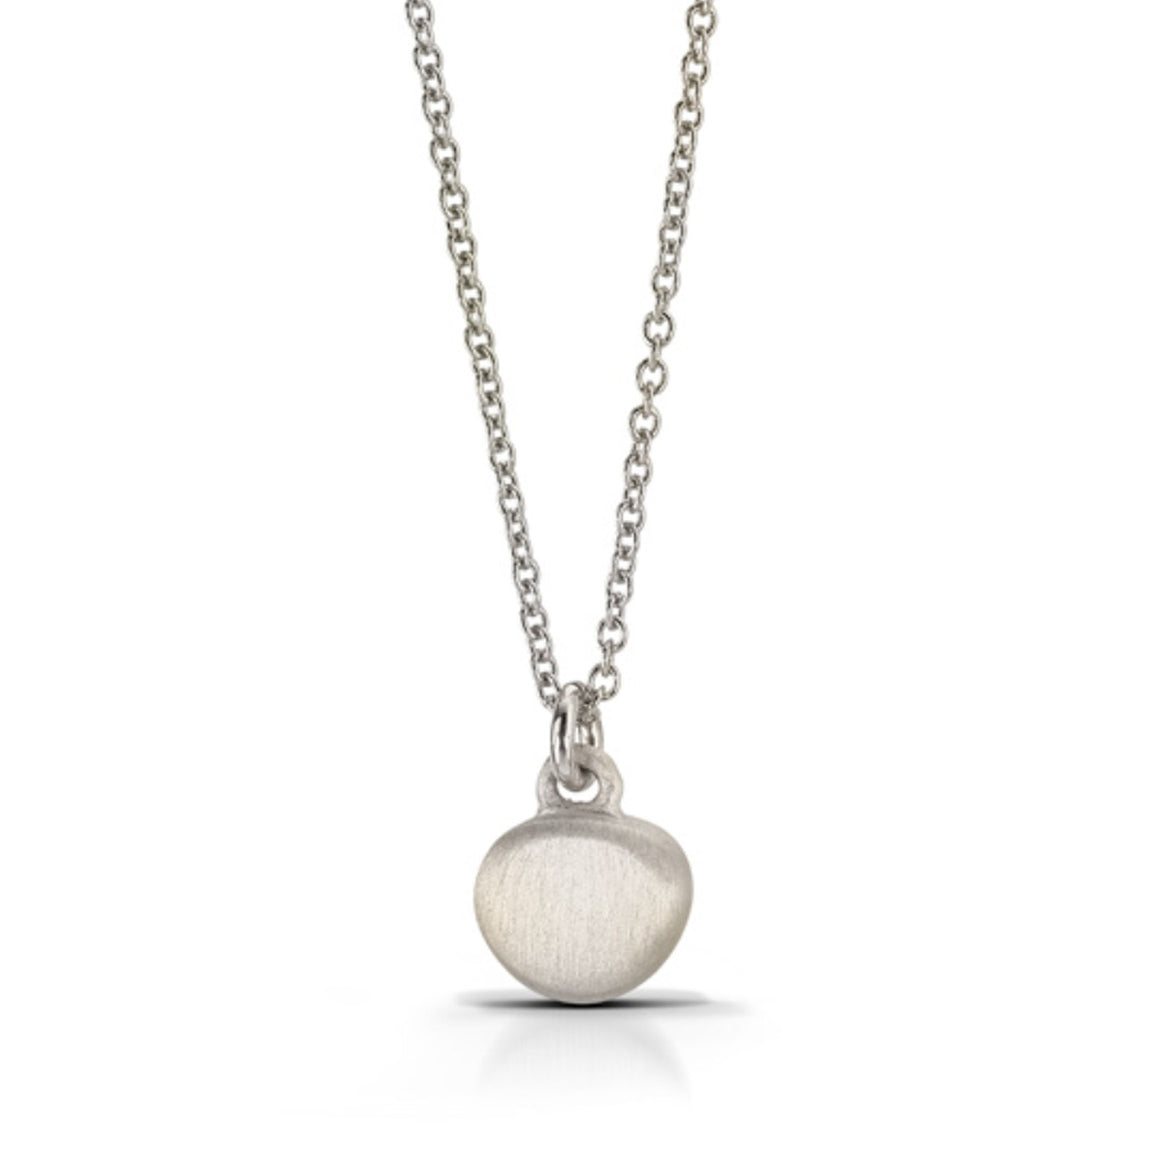 Silver Pebble Pendant Necklace with shadow finish